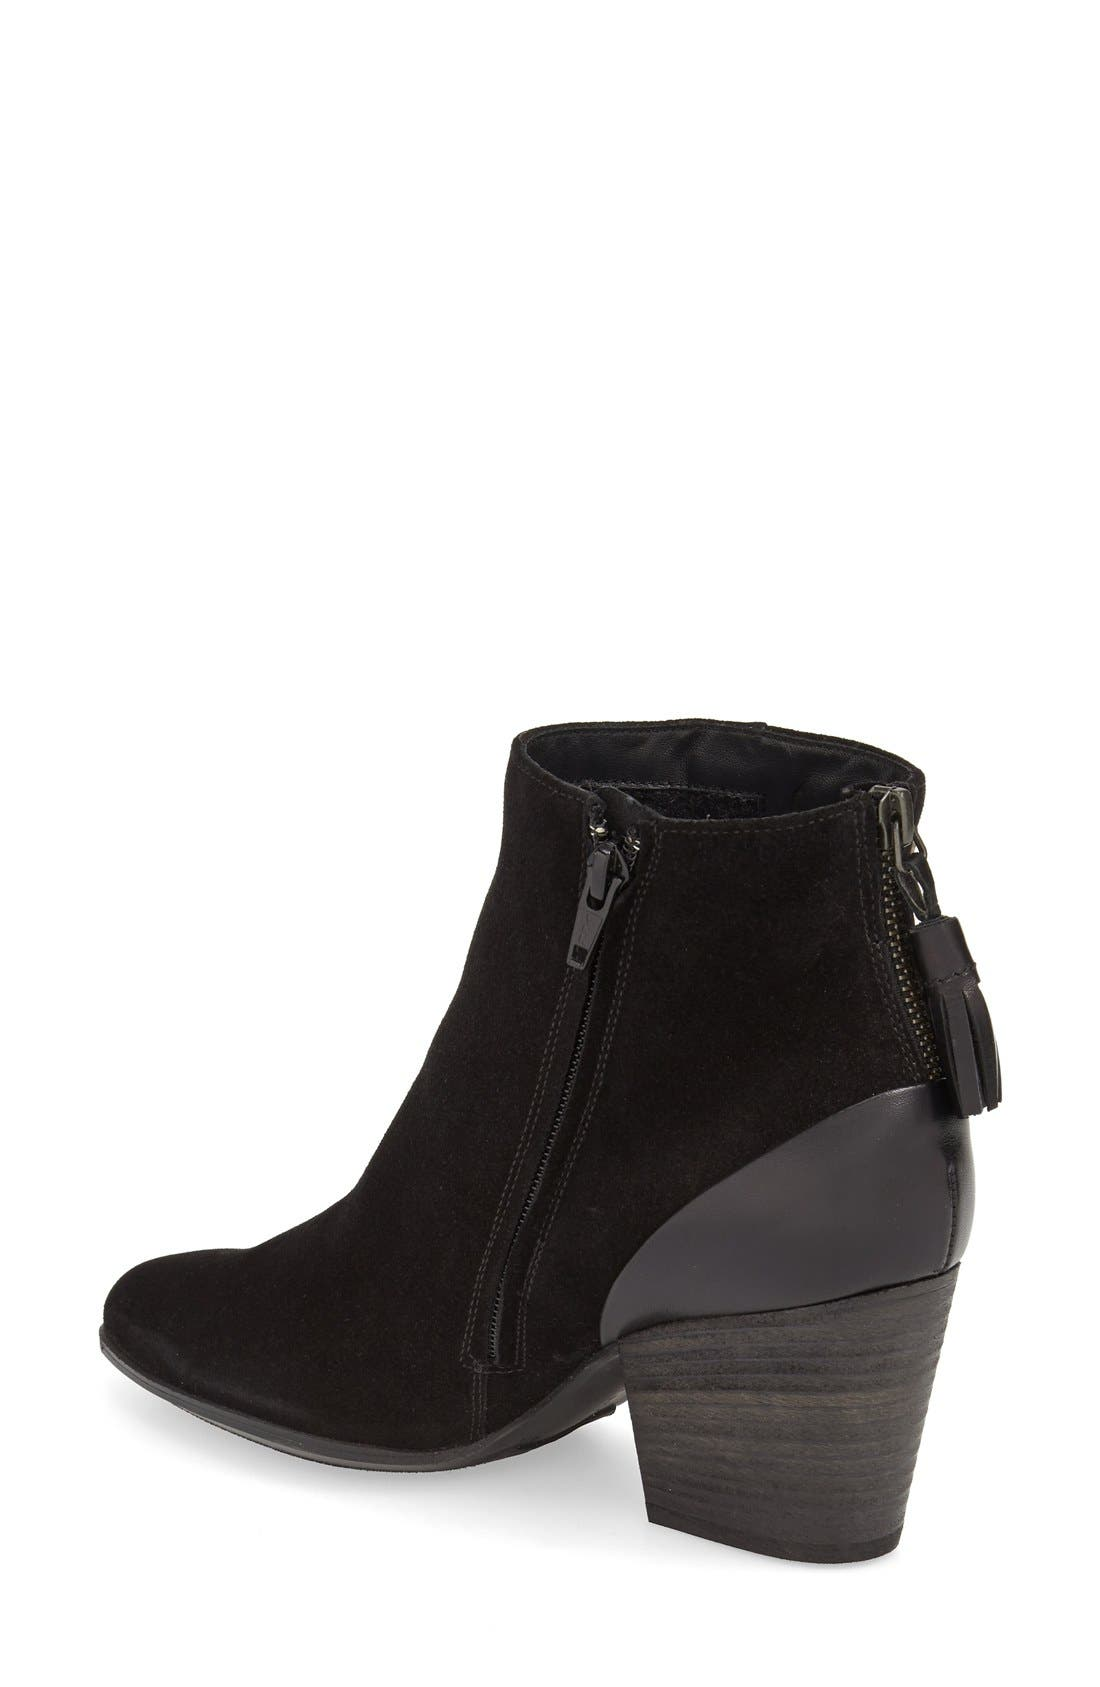 'Jada' Water Resistant Bootie,                             Alternate thumbnail 2, color,                             003